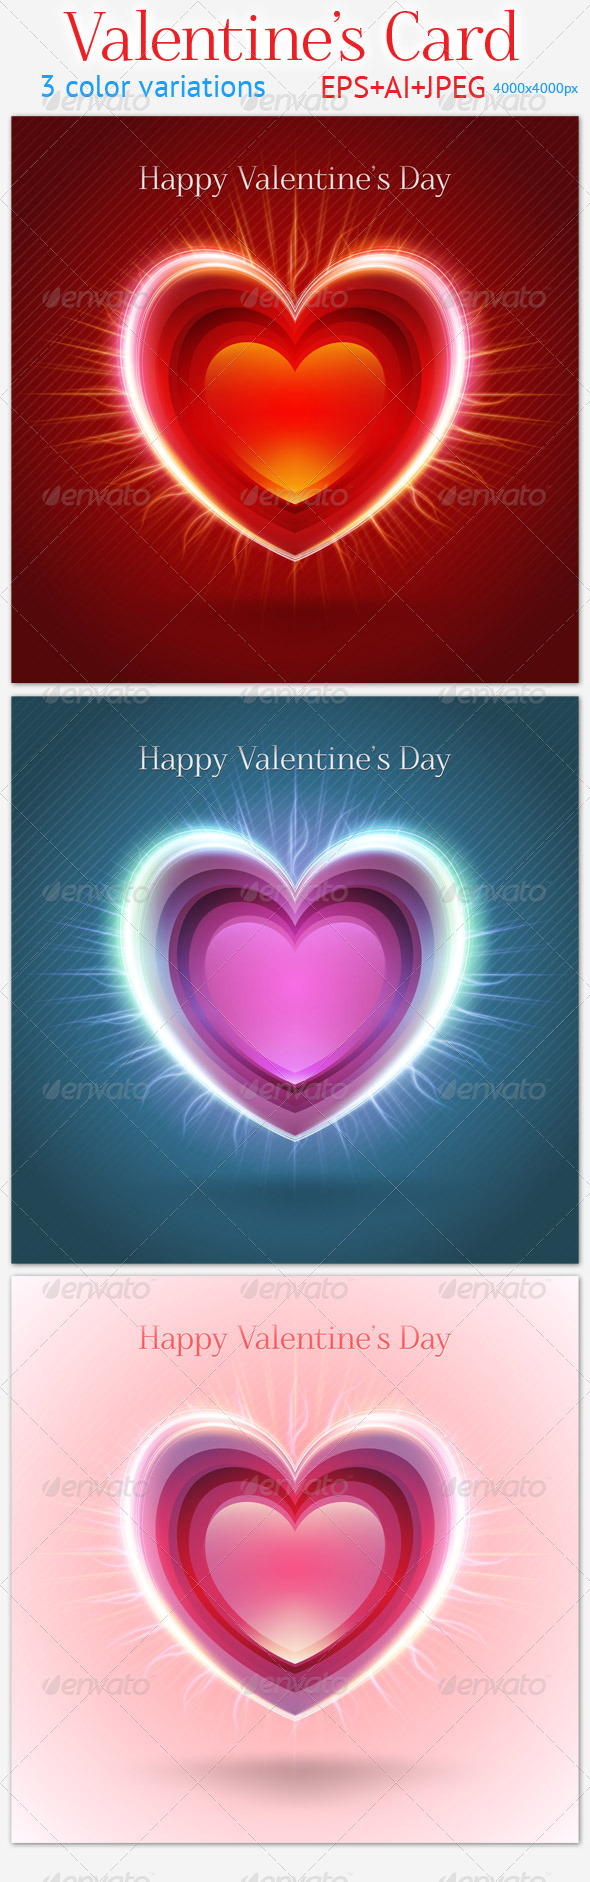 GraphicRiver Valentine s Card 3821354